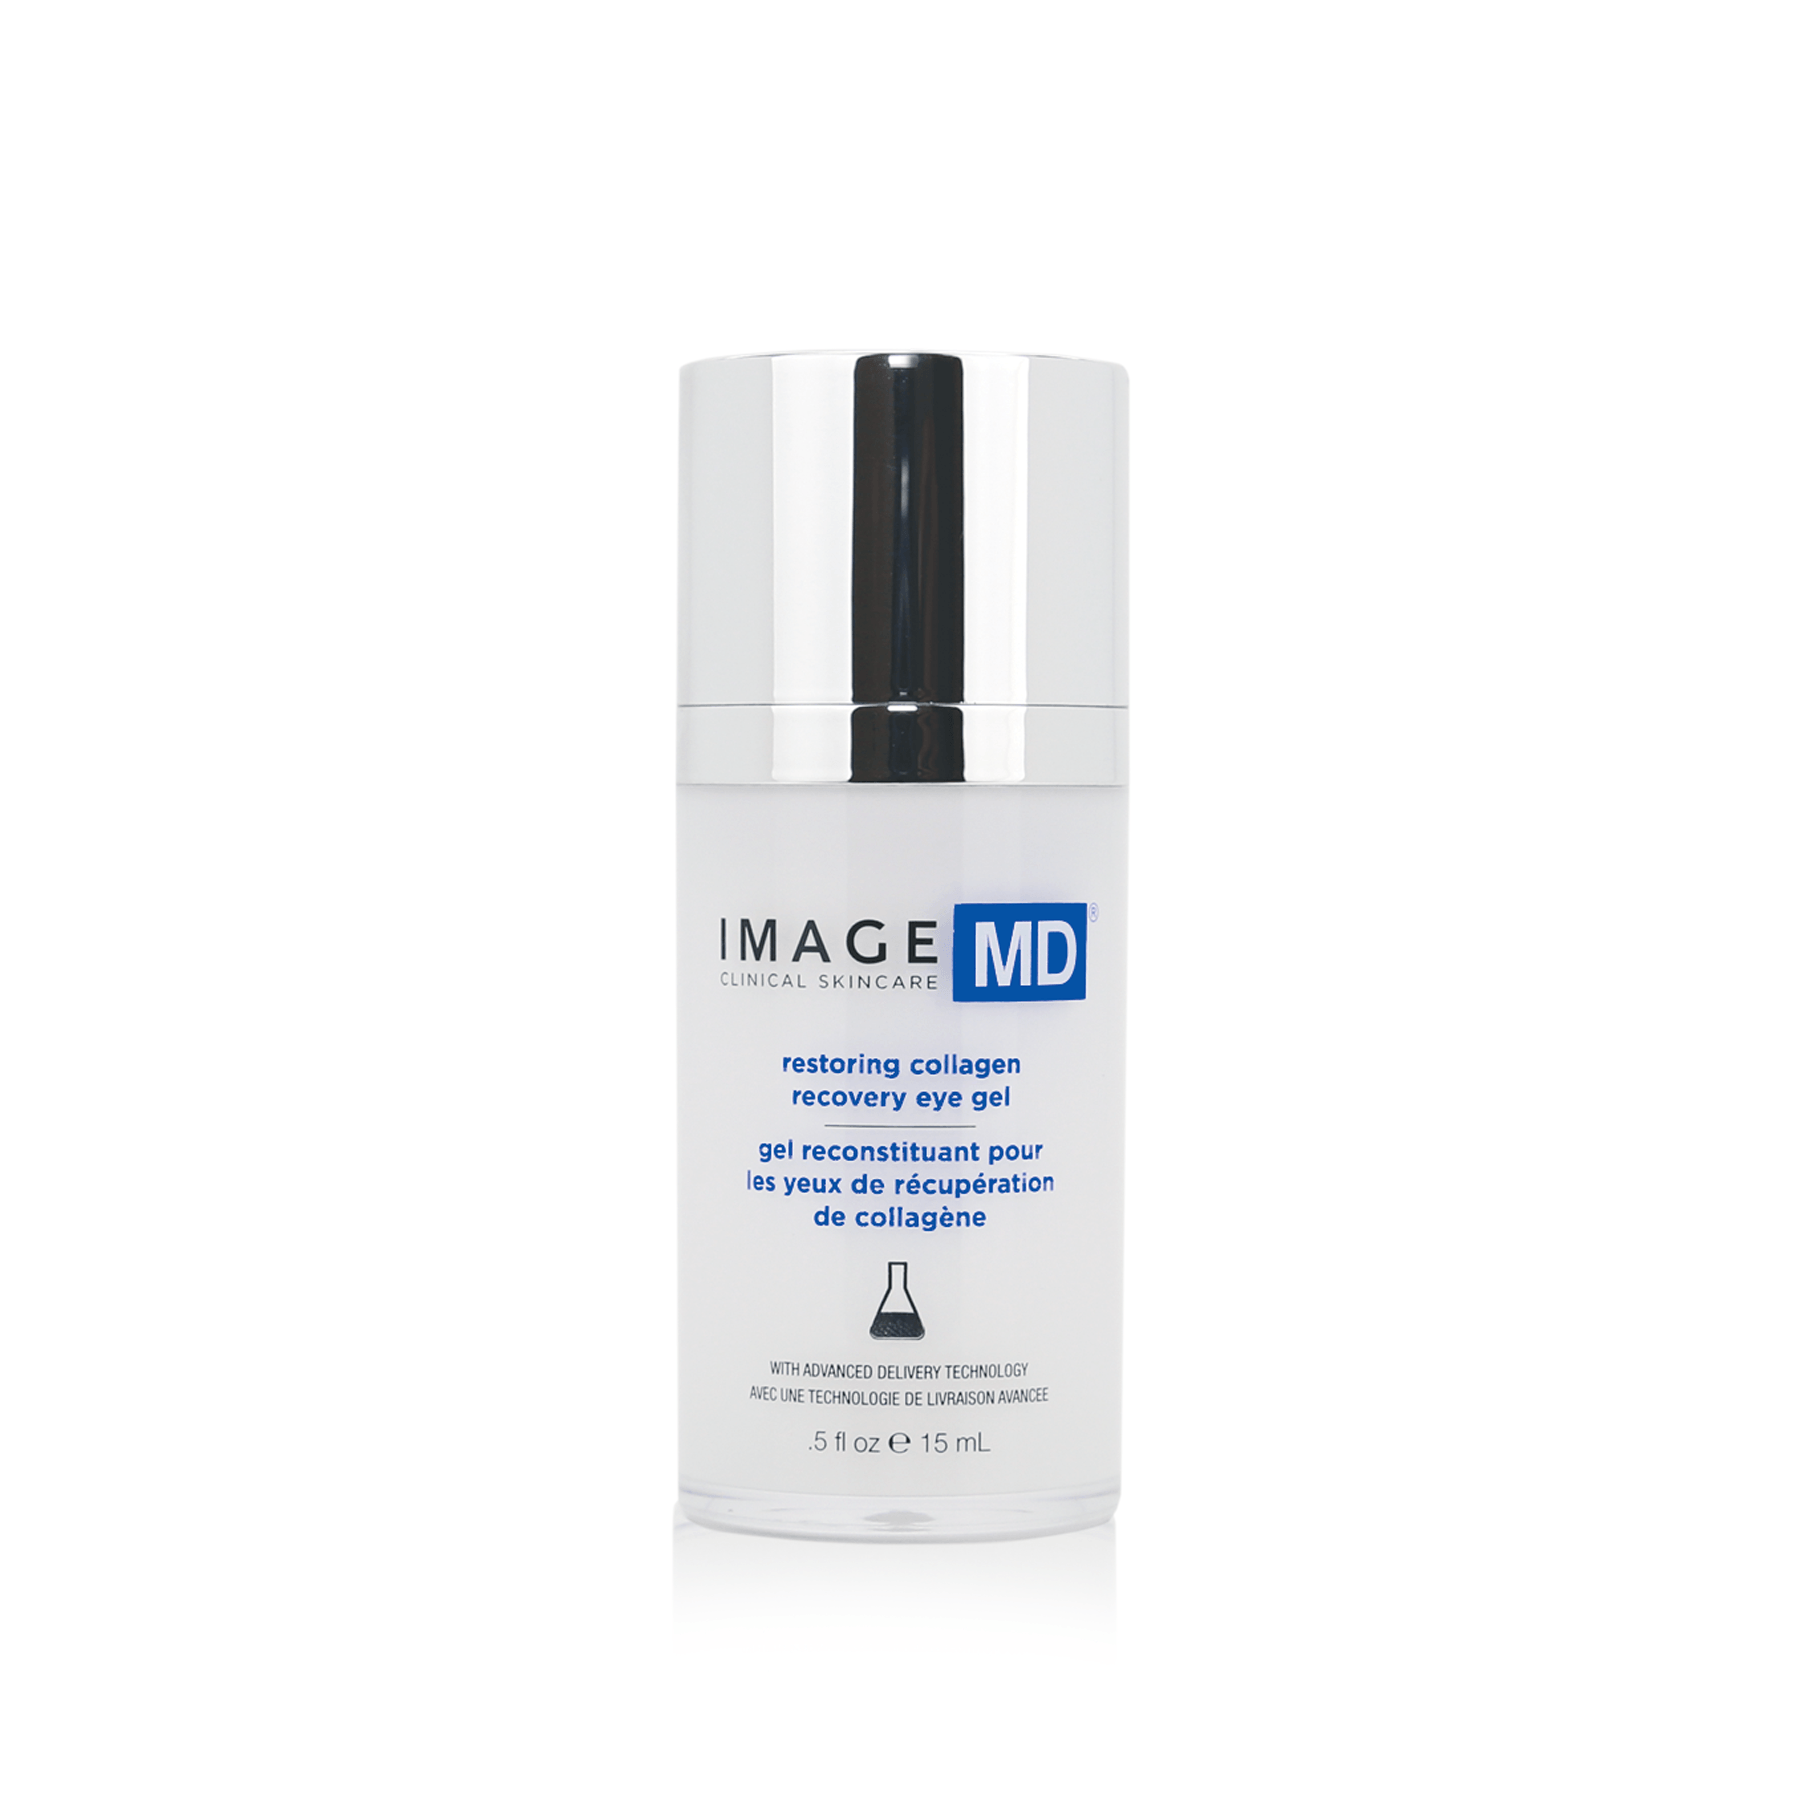 Image Md Restoring Collagen Recovery Eye Gel With Adt